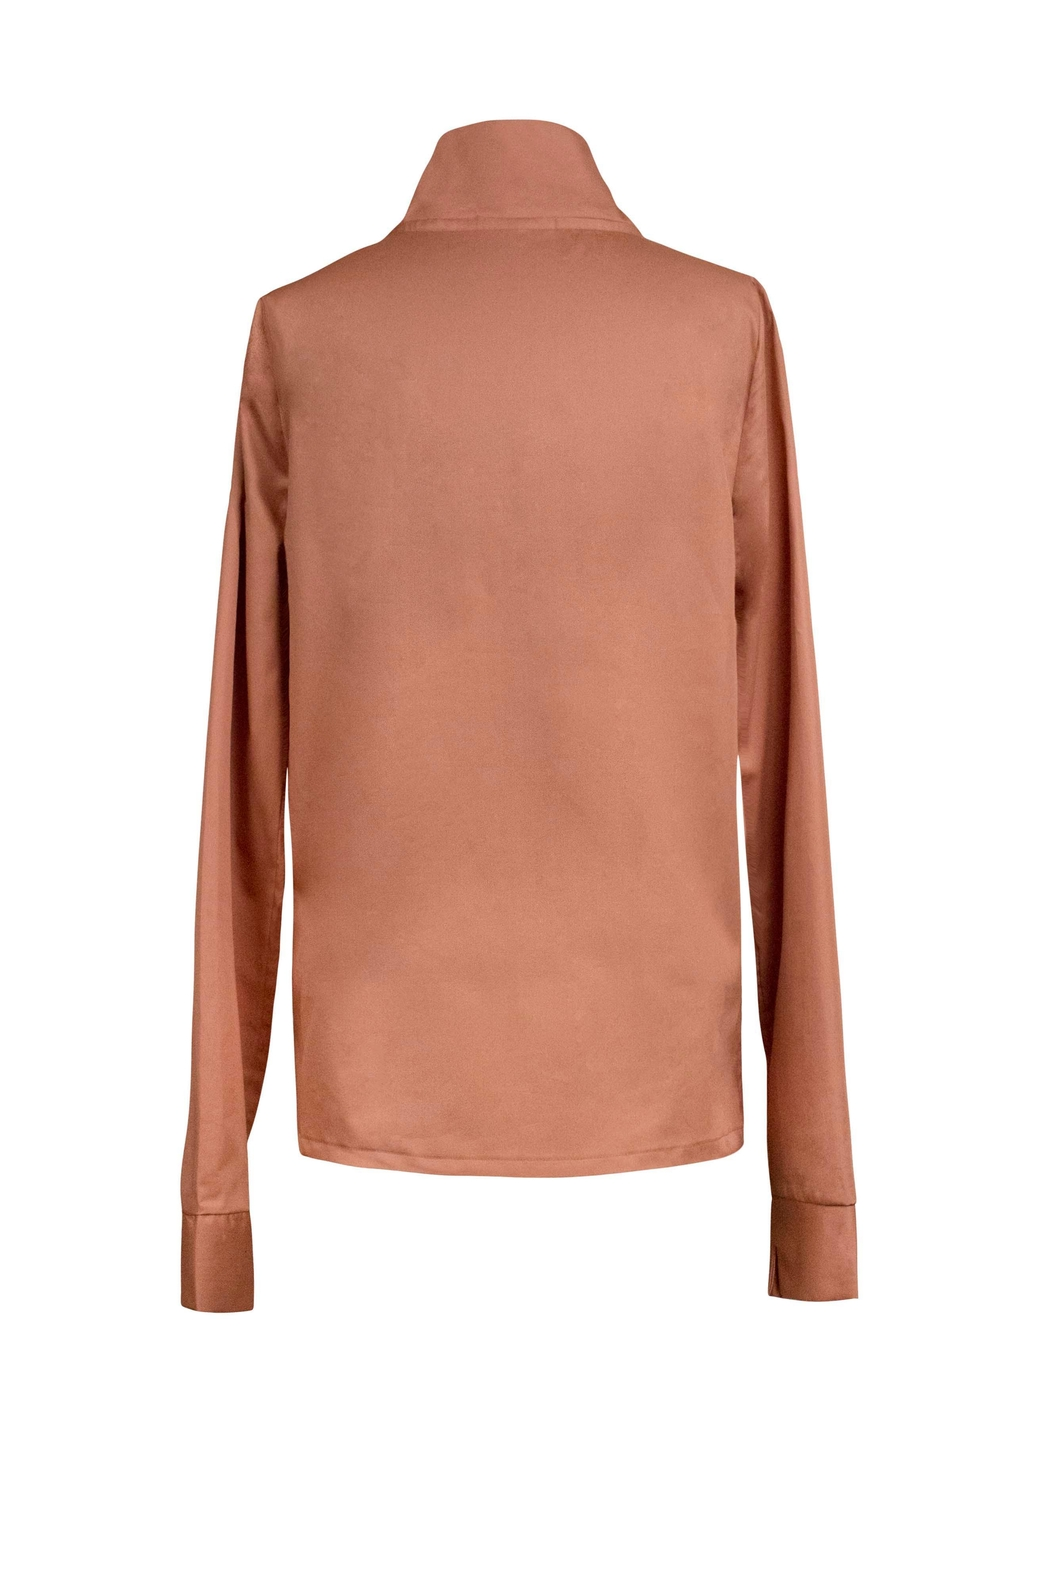 Helena Jones Long Sleeve Top - Front Full Image